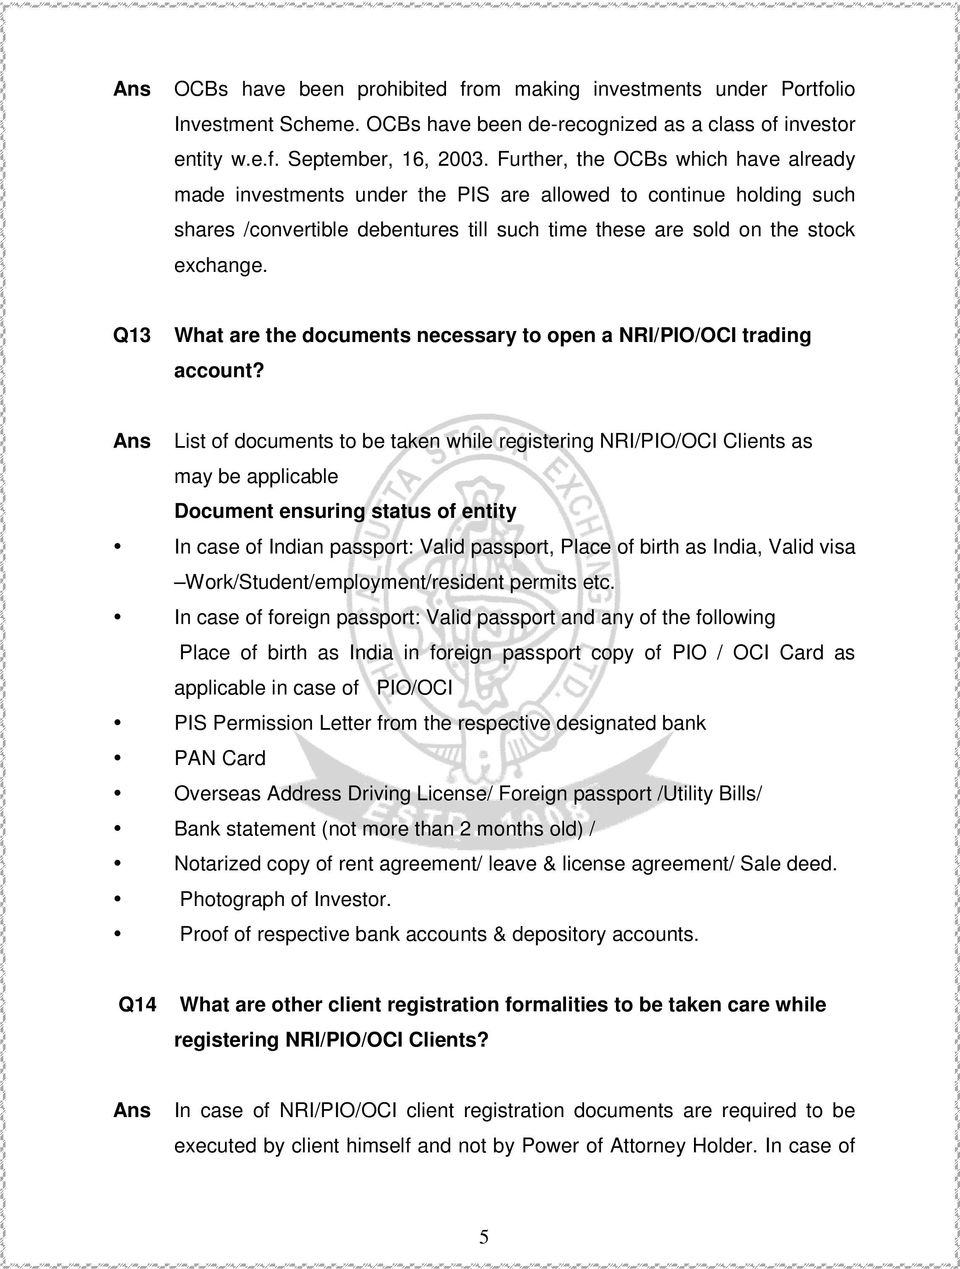 Q13 What are the documents necessary to open a NRI/PIO/OCI trading account?